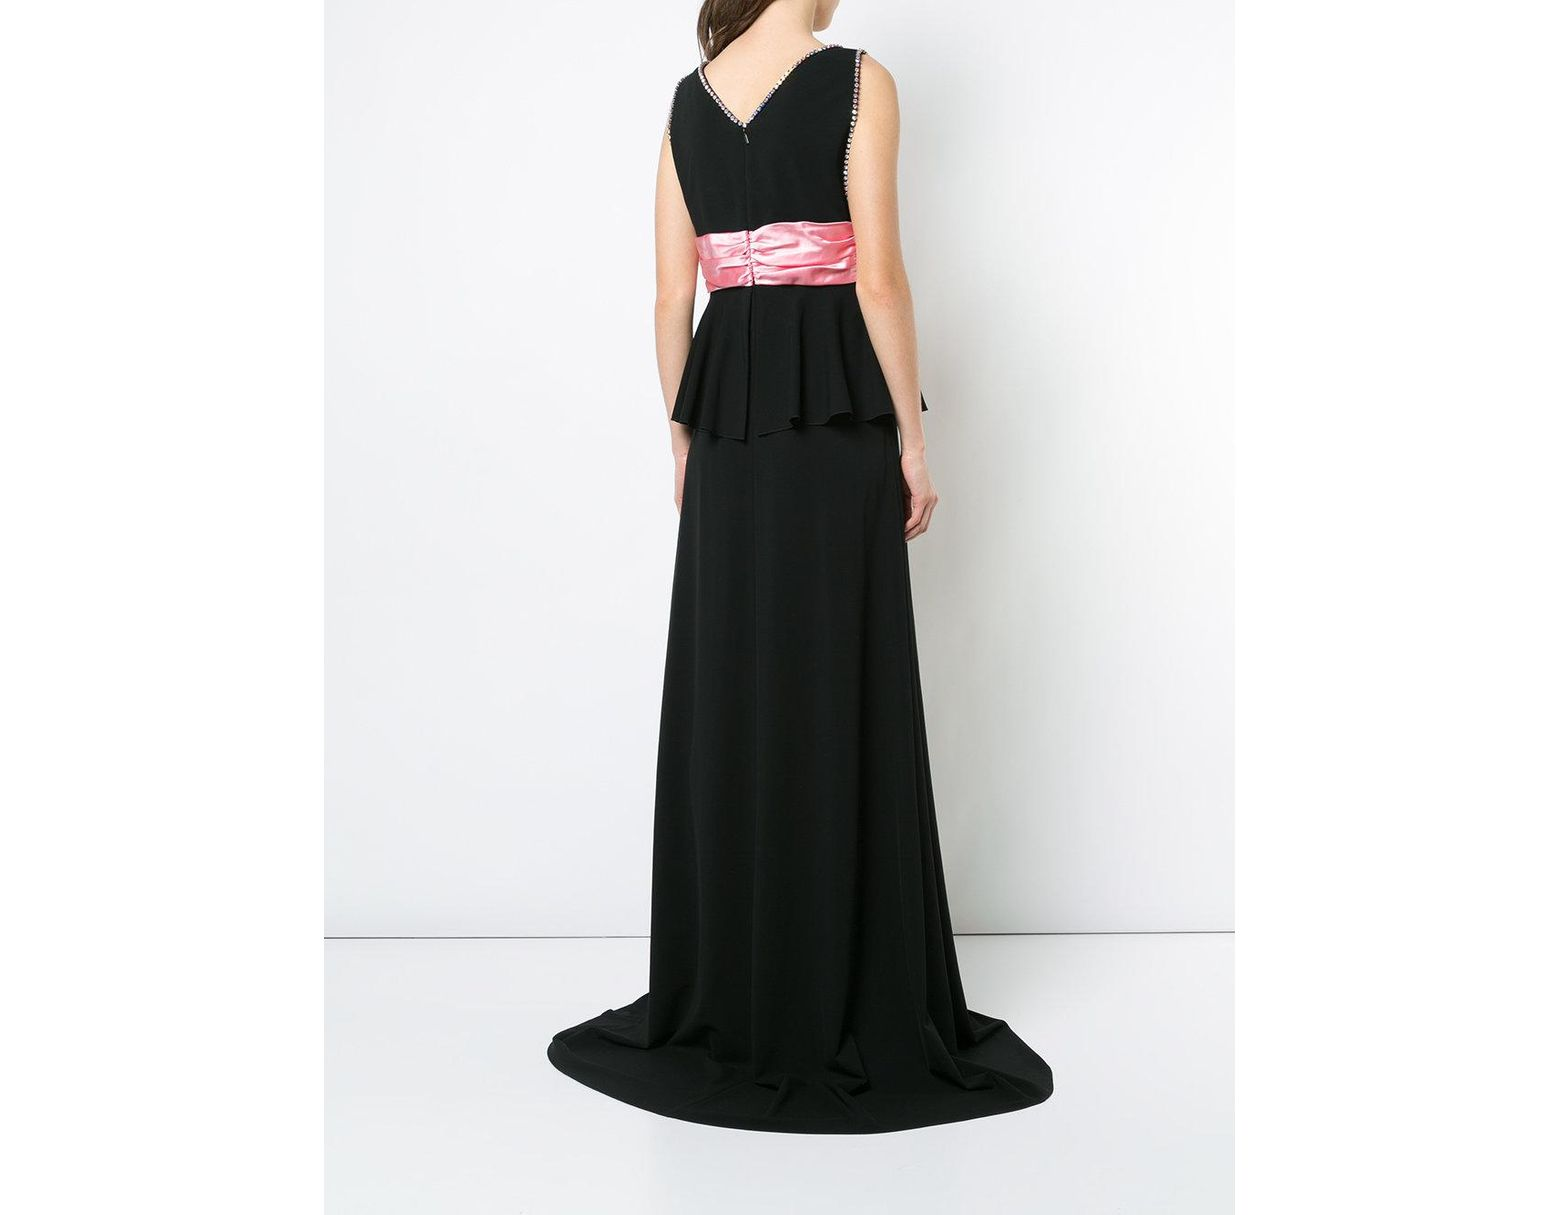 41ca378a7 Gucci Bow Detail Evening Dress in Black - Lyst